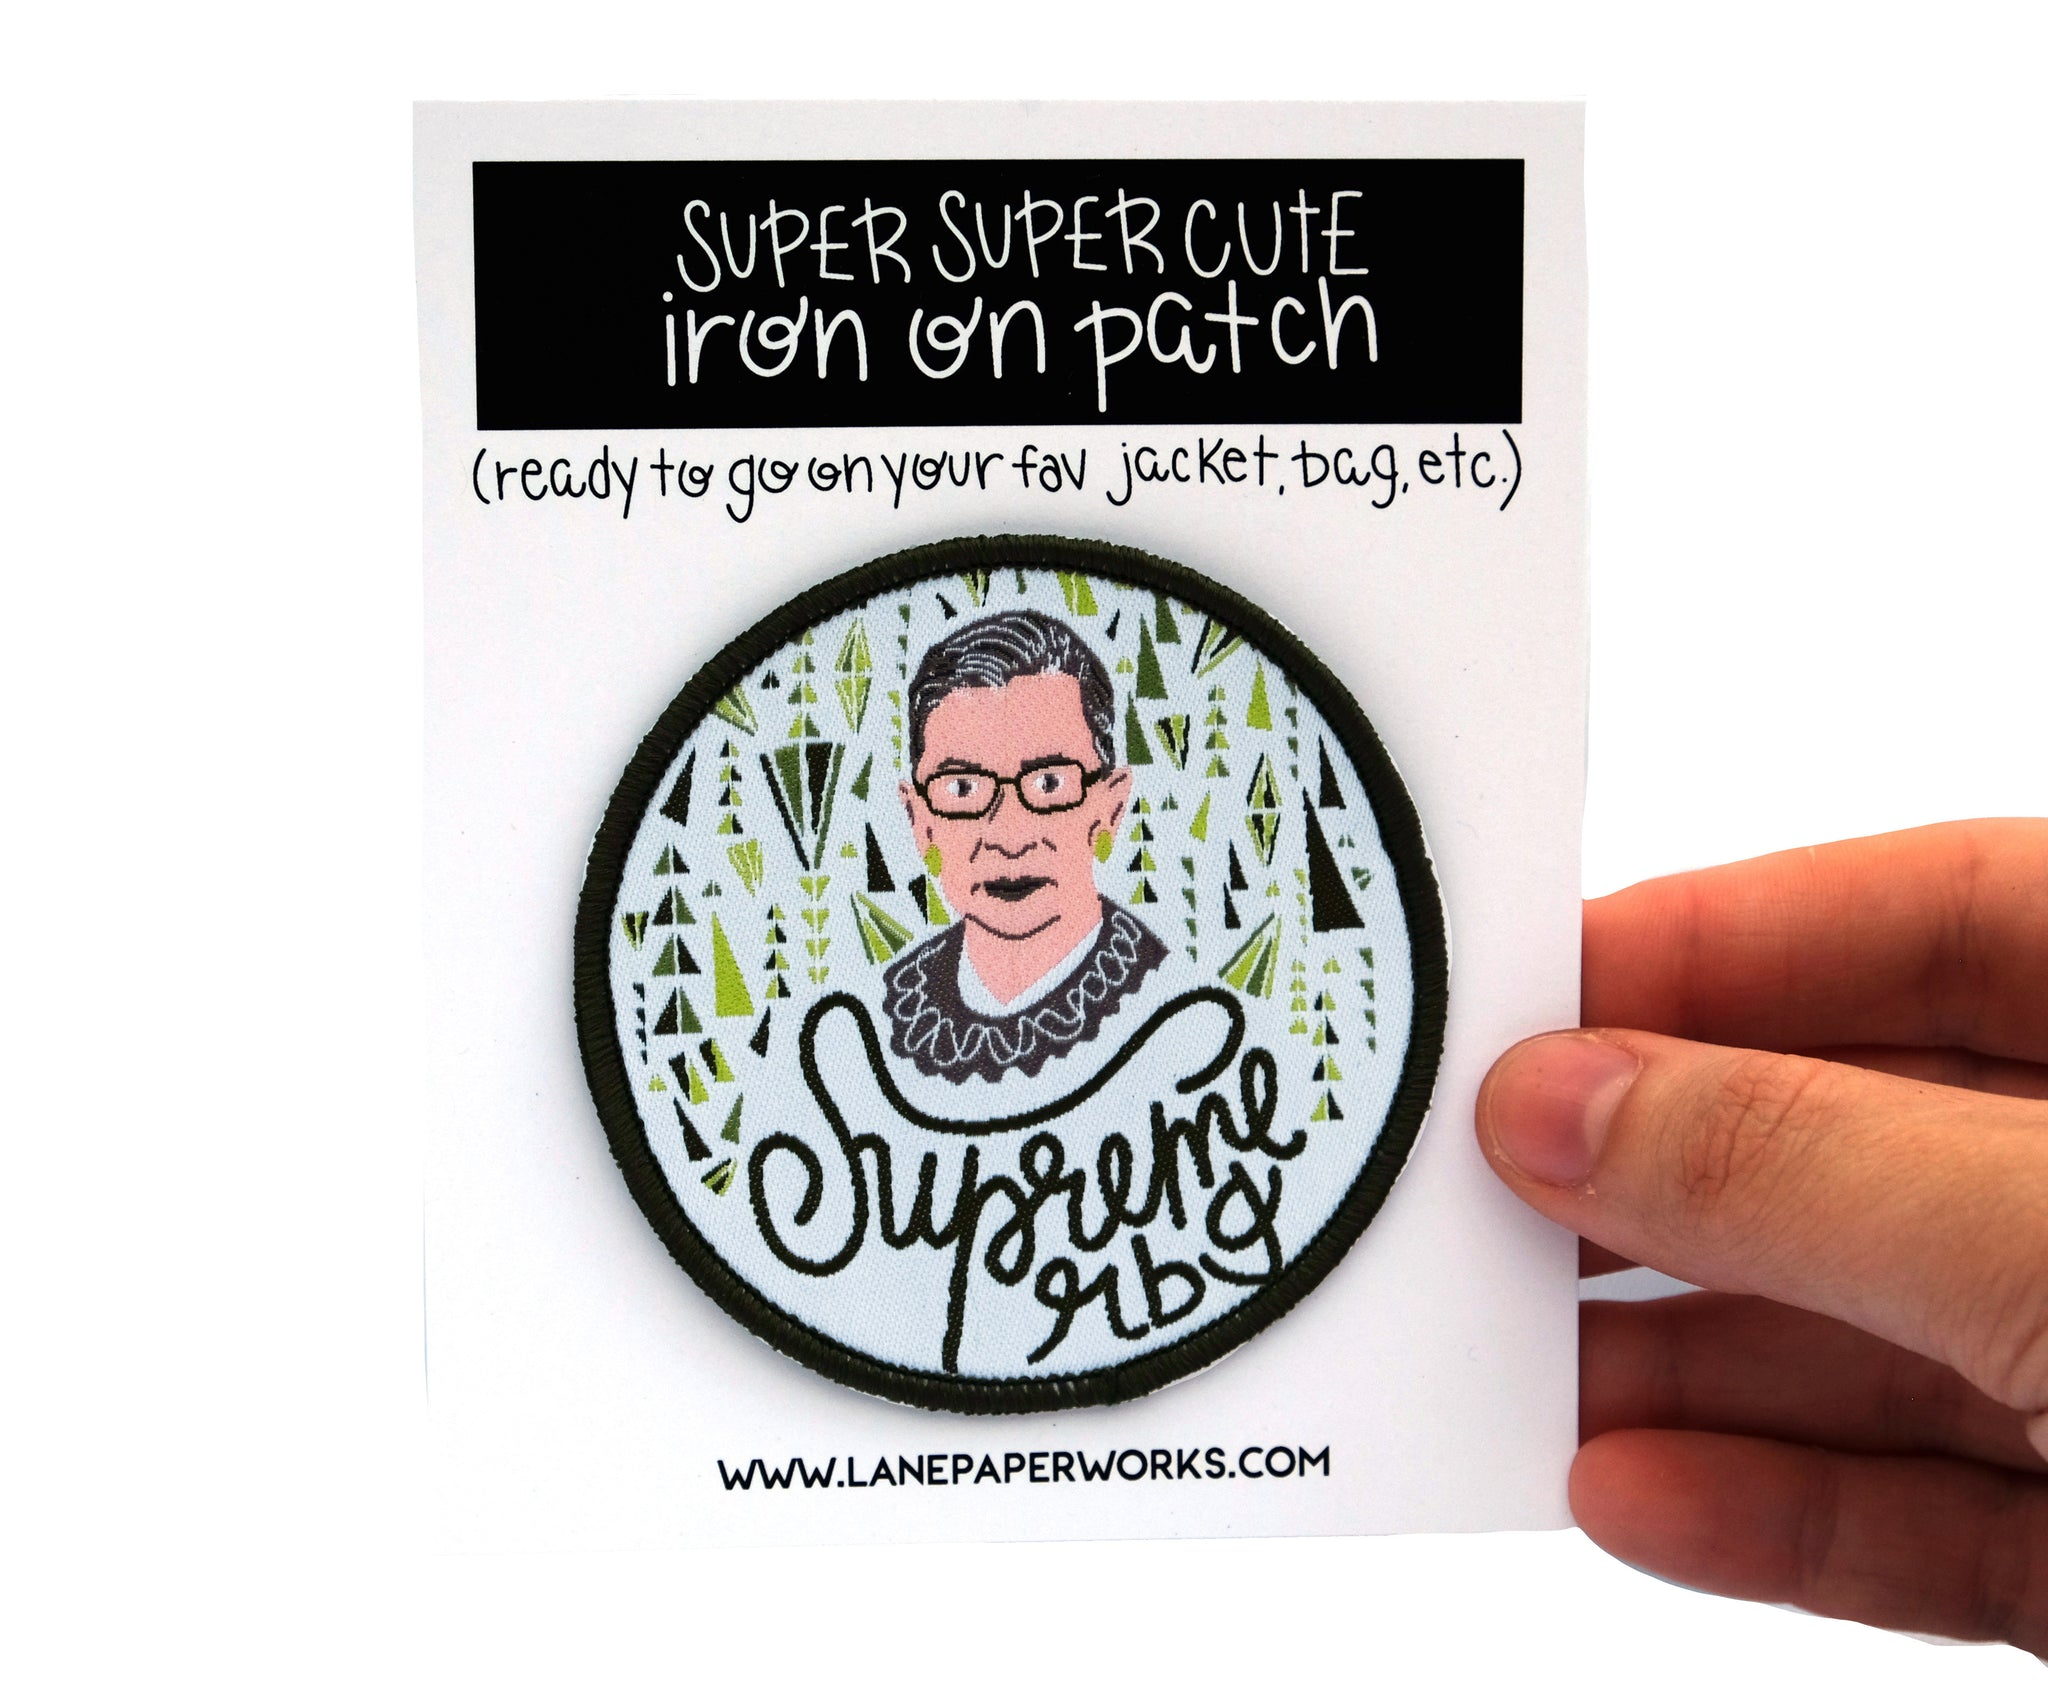 Supreme RBG Patch